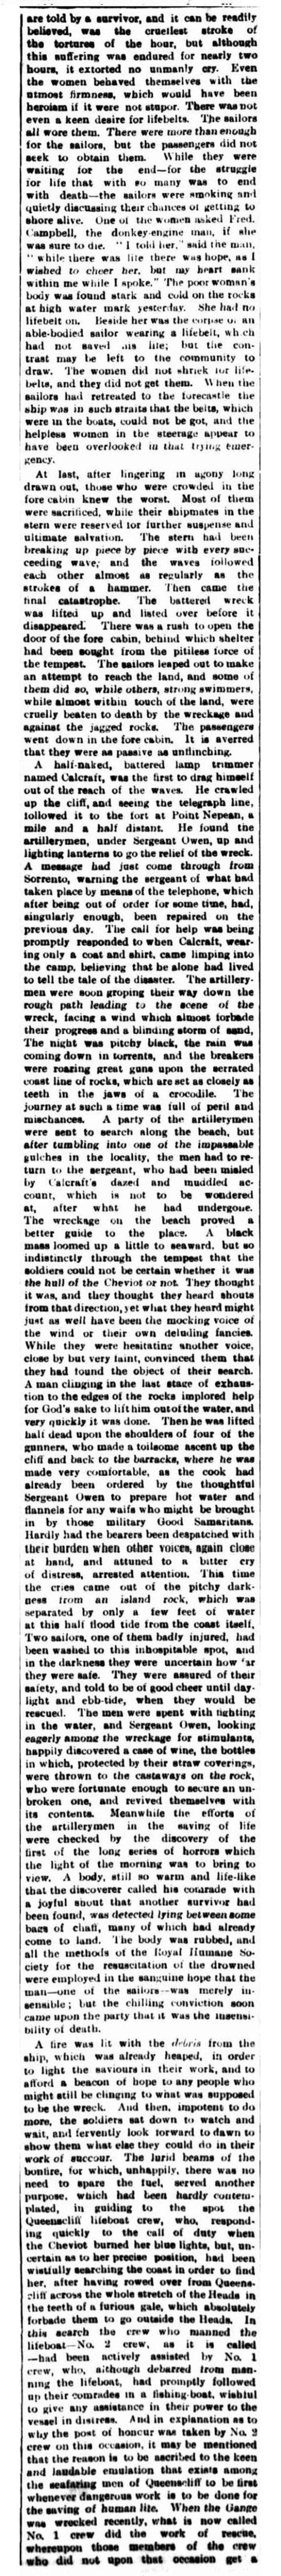 The Argus (Melbourne, Vic. : 1848 - 1957), Friday 21 October 188